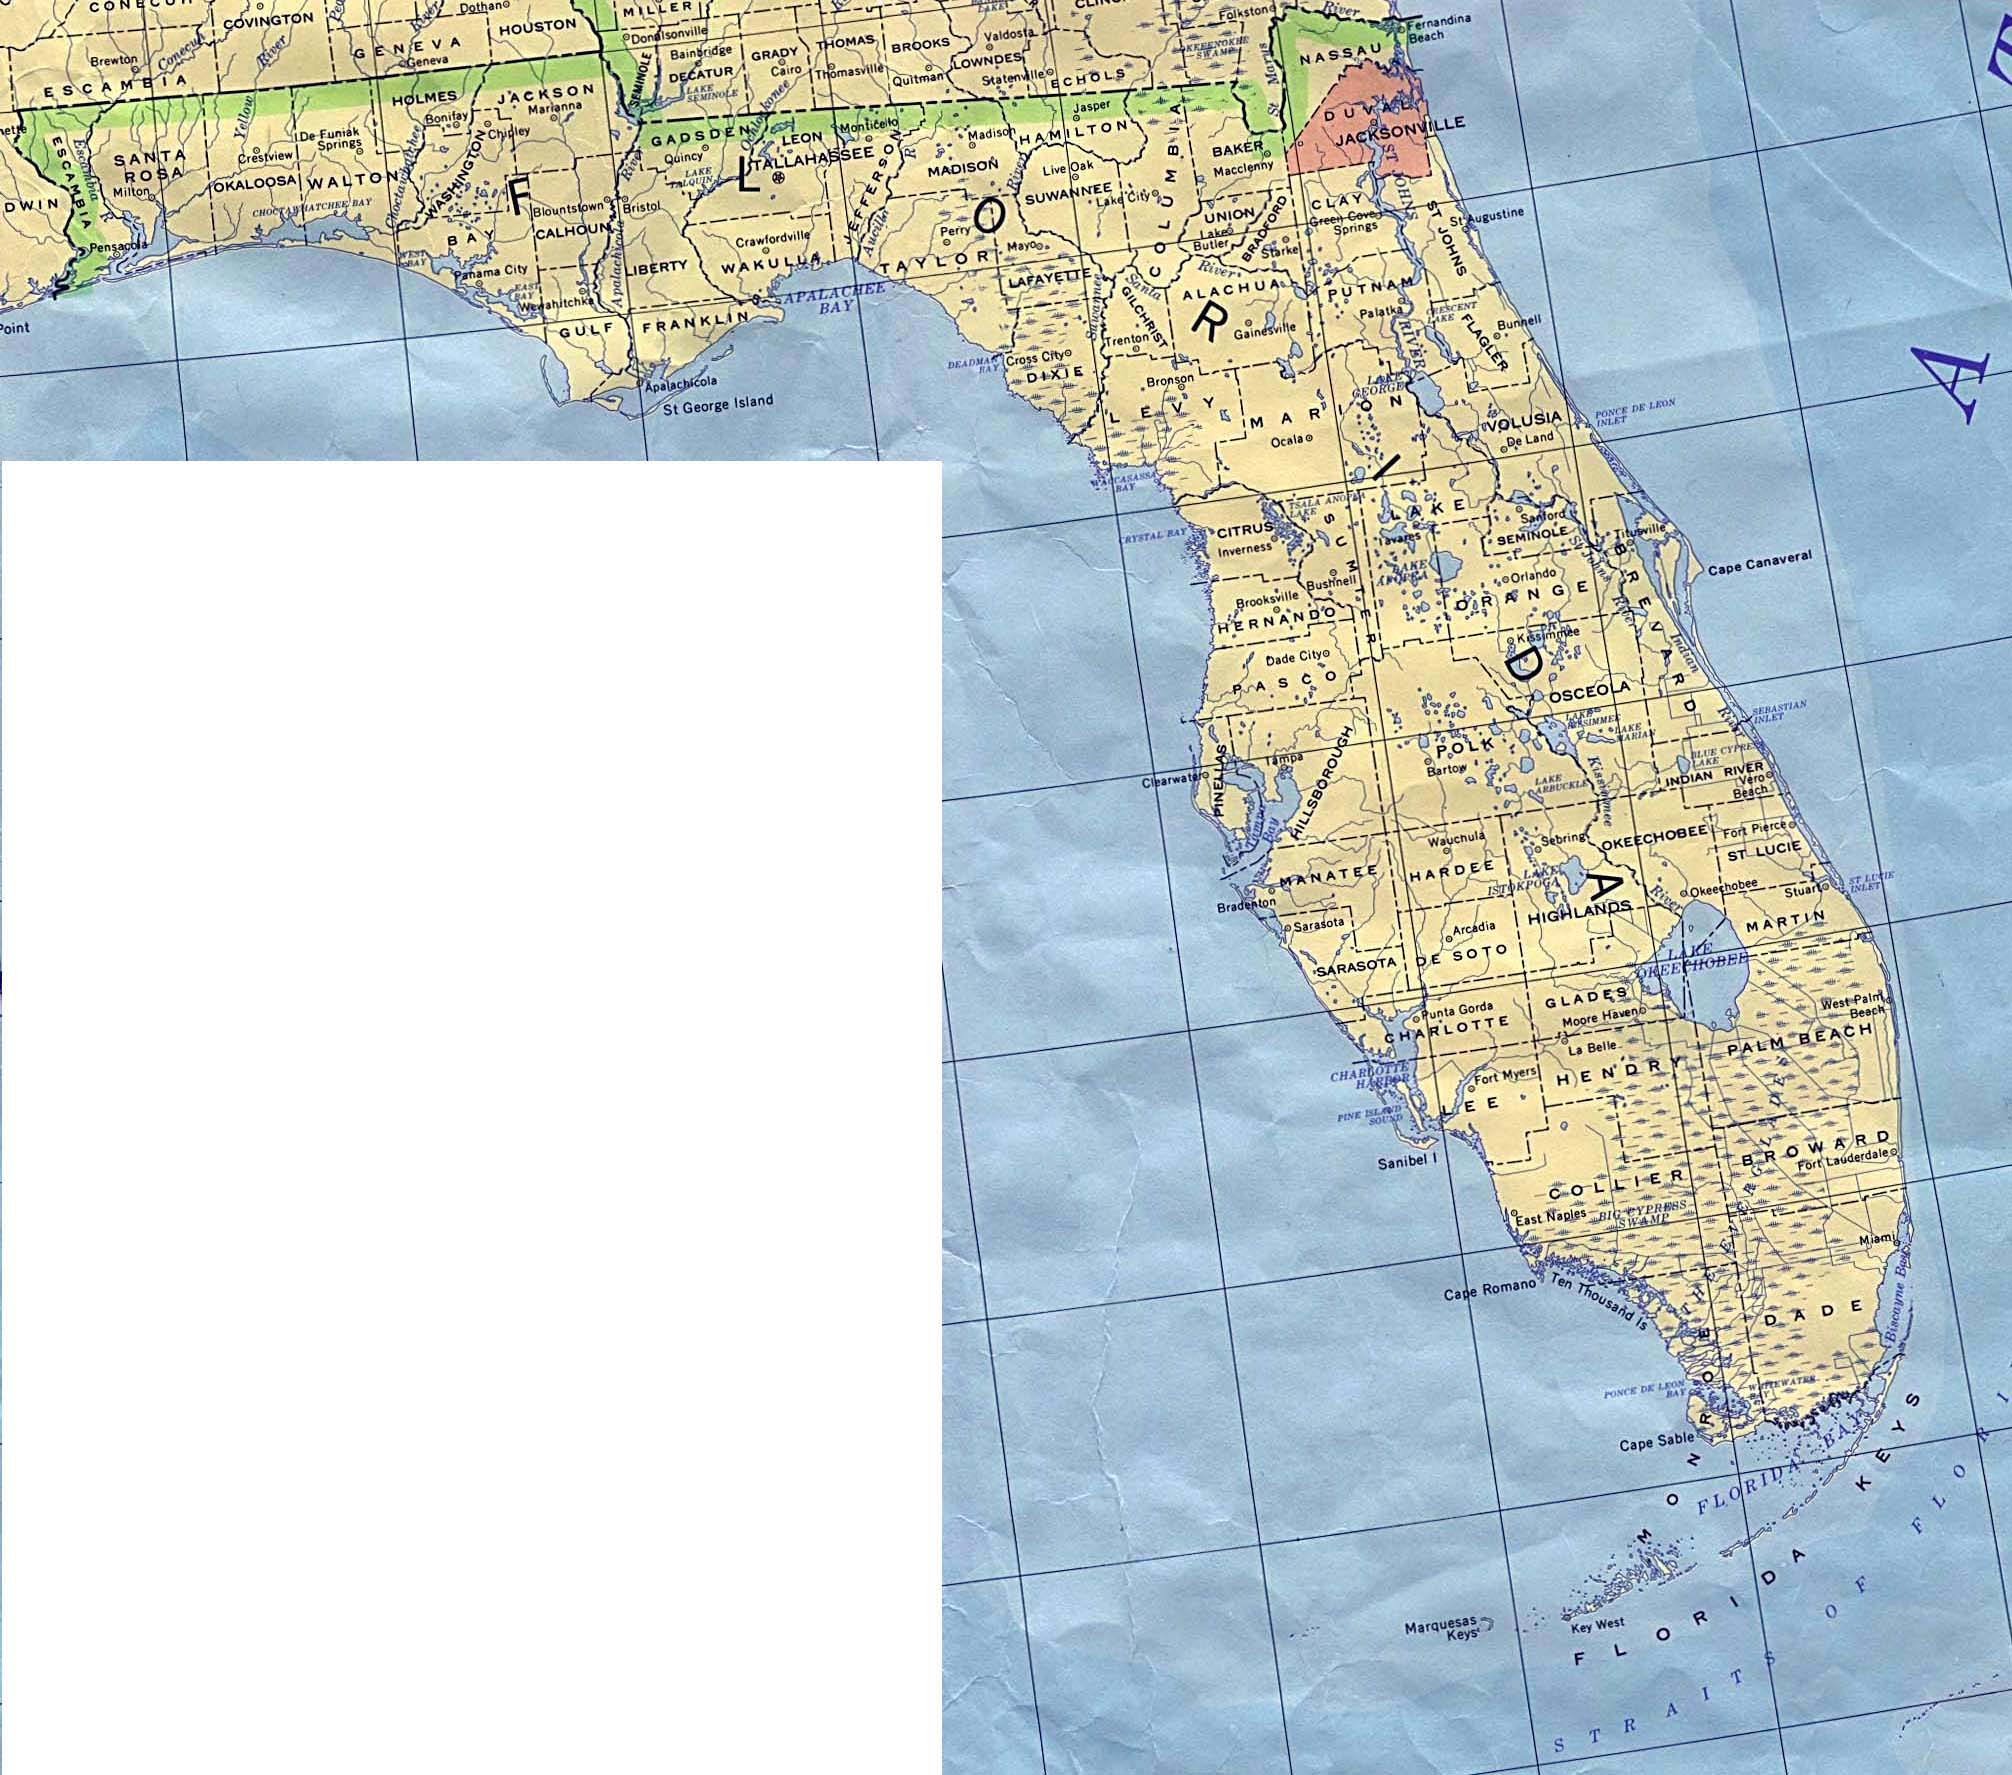 the state of florida is the united Official state symbols, emblems, and icons of florida - places to see in florida - landmarks, parks, historic markers, cities and towns - learn the culture and history of florida.